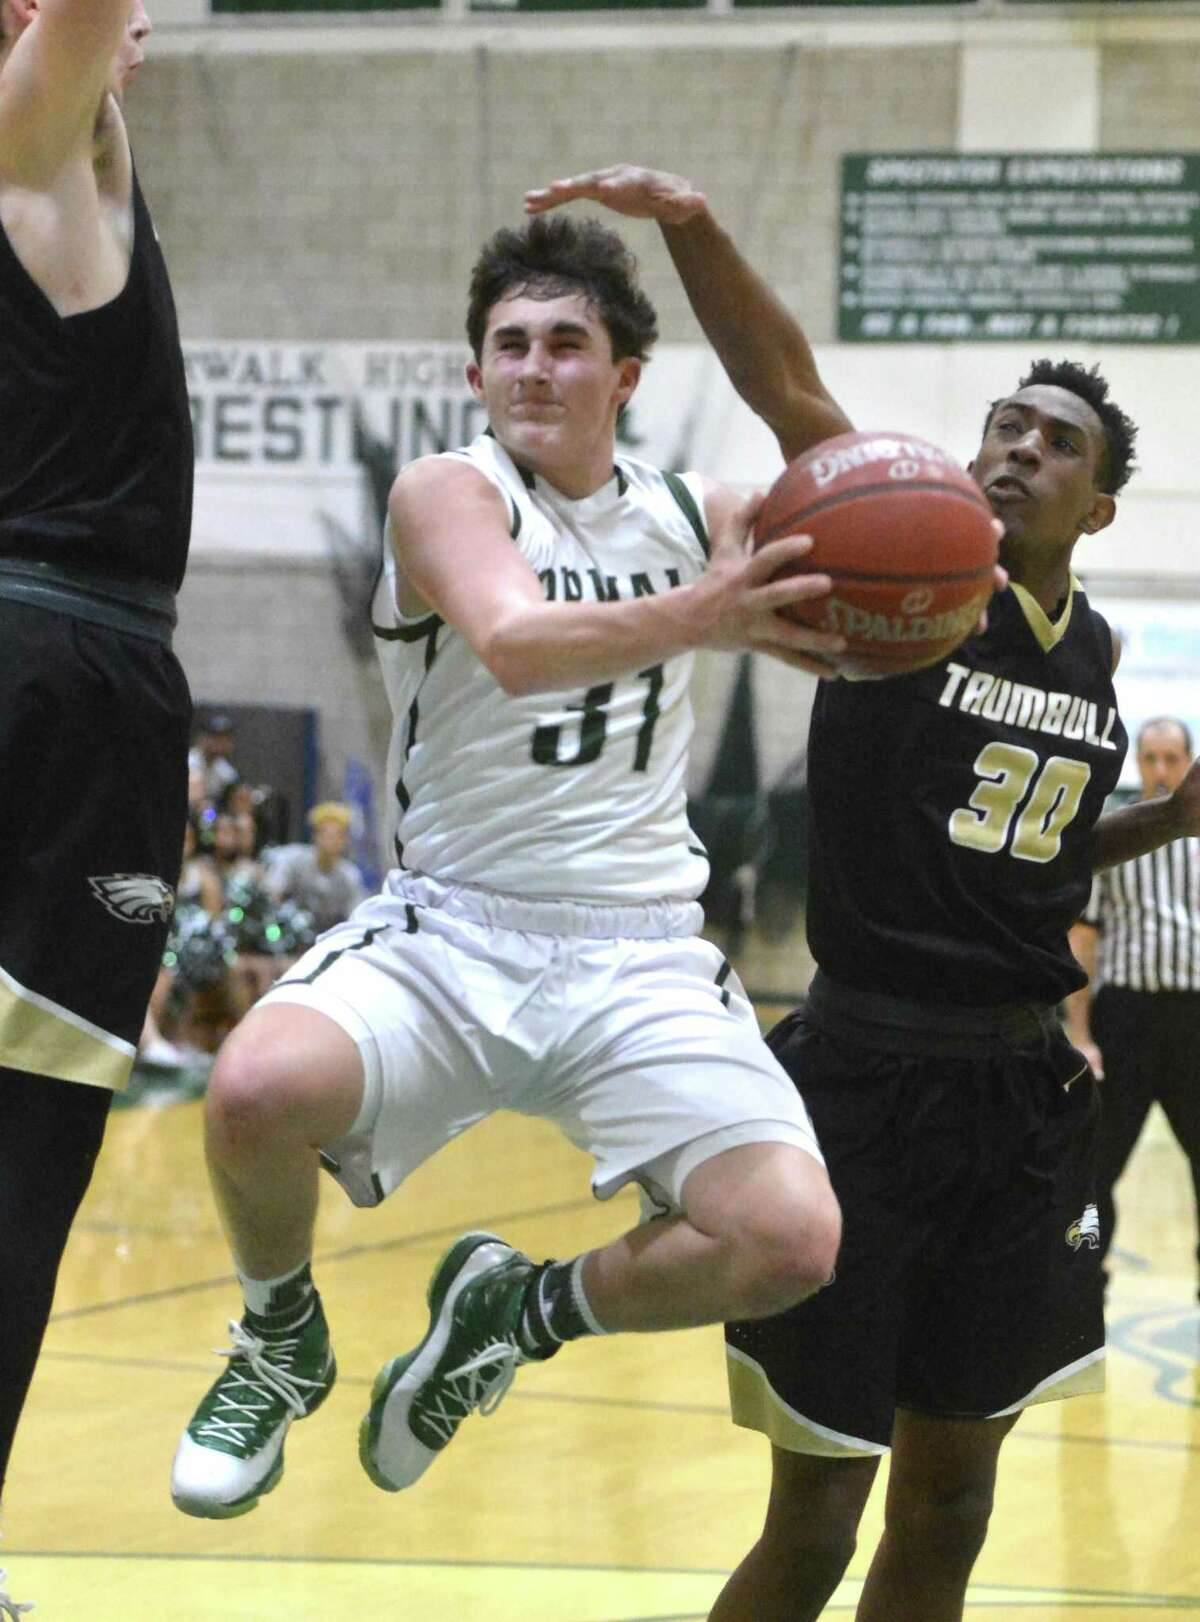 Norwalk High's Joseph Benincaso drives to the basket against Trumbull High Monday night in Norwalk. The Bears improved to 11-6 with a